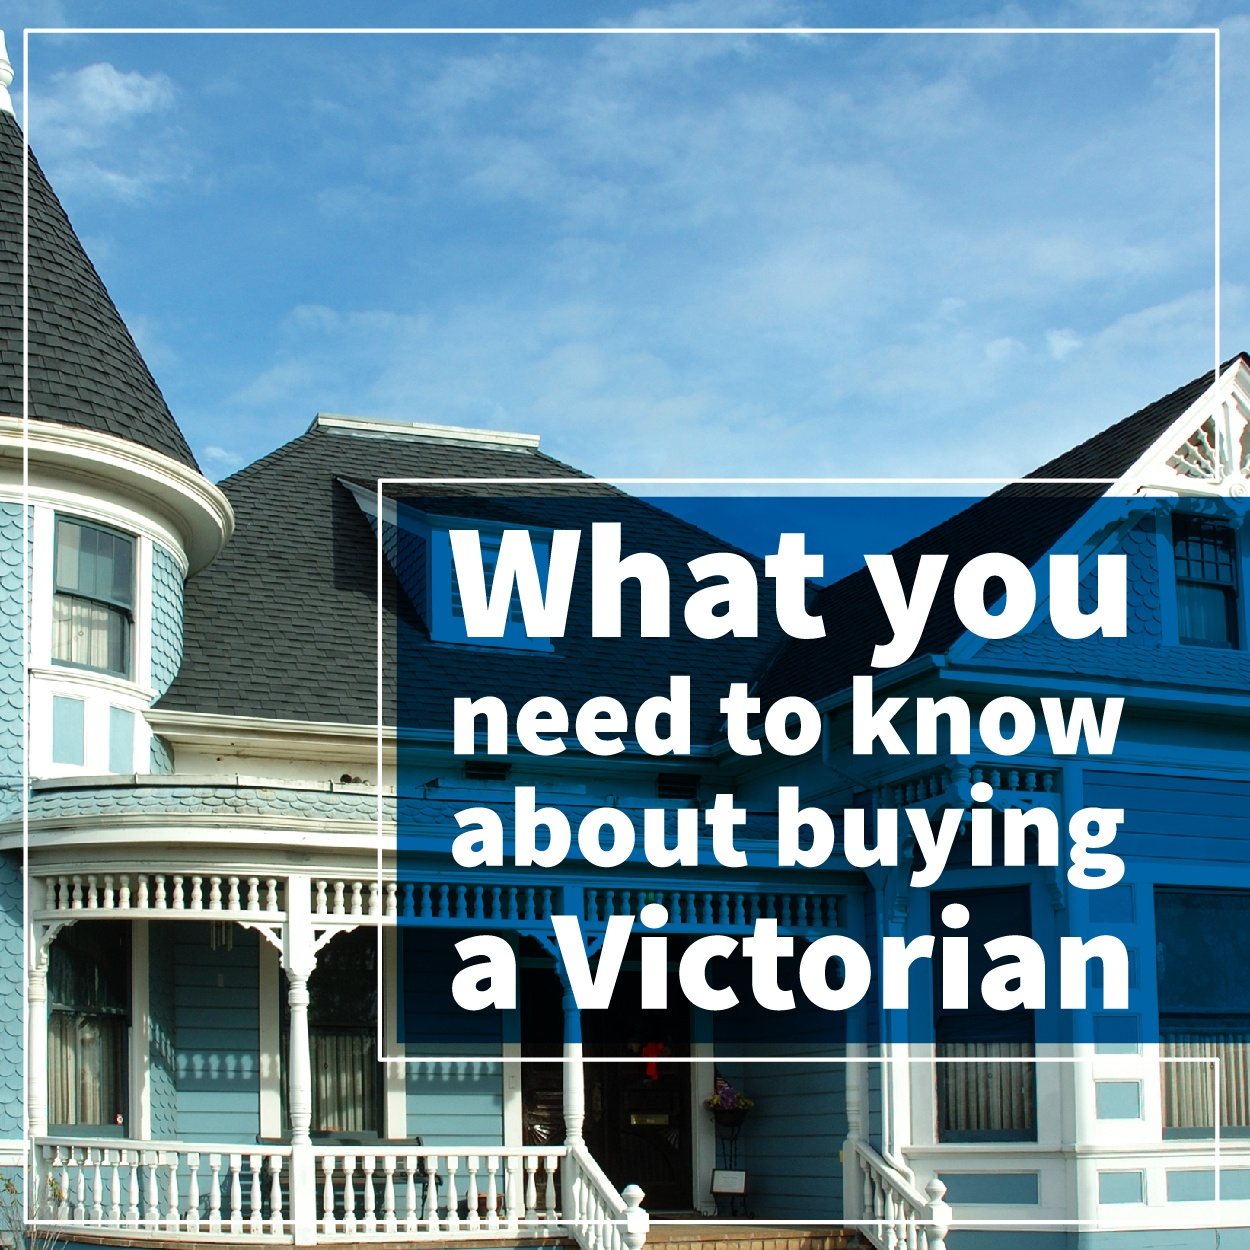 Buying_a_victorian-01